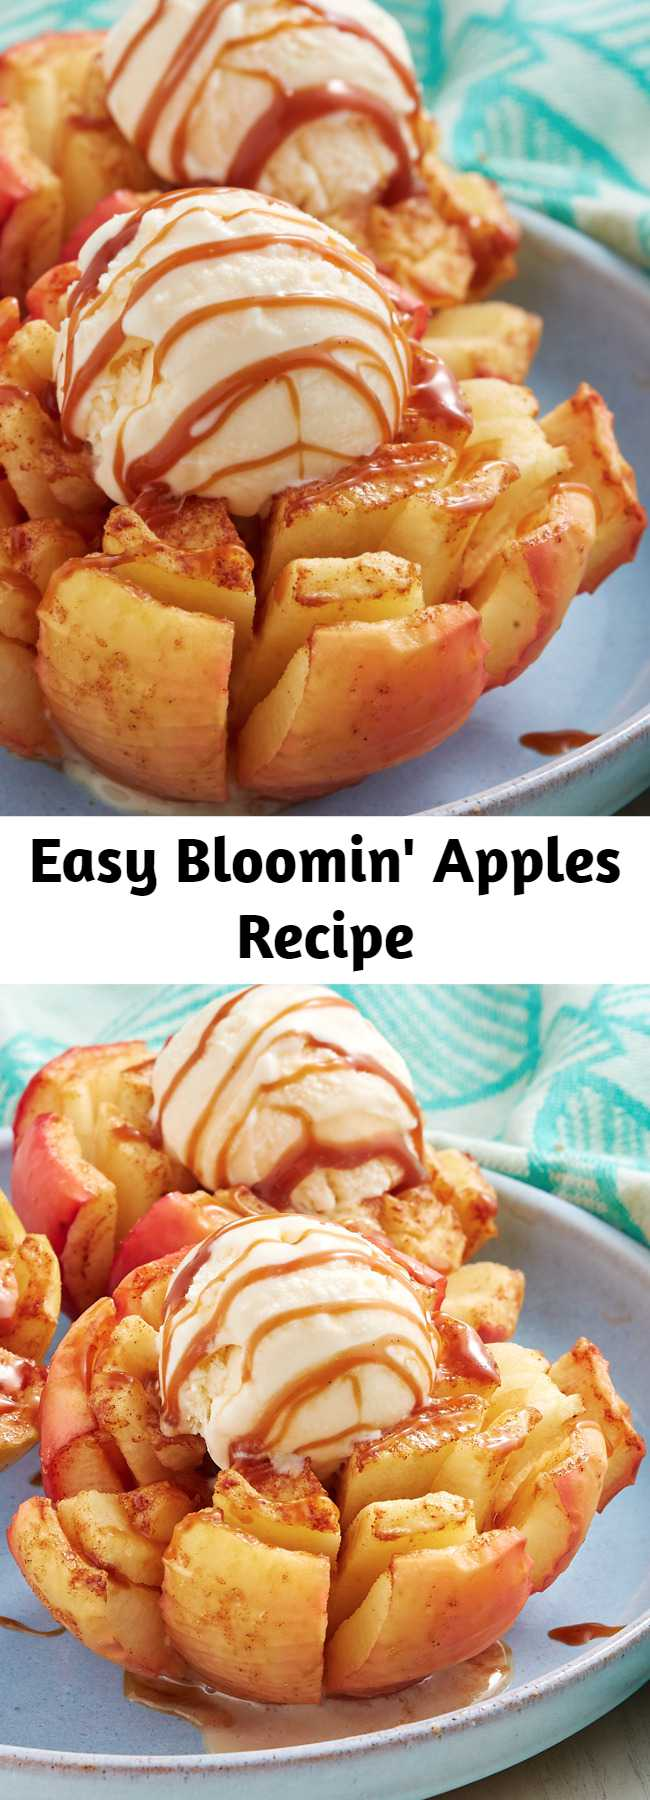 Easy Bloomin' Apples Recipe - We took inspo from the ever popular bloomin' onion and made a just as fun dessert. Though these finished bloomin' apples look insane, they're actually quite easy to make. Because apples can turn brown really quickly, you'll want to brush them with butter and get them in the oven pretty quickly after slicing them. If you want to take your time, squeeze lemon juice all over the cut side to prevent browning. These are also so fun to make in the air fryer!